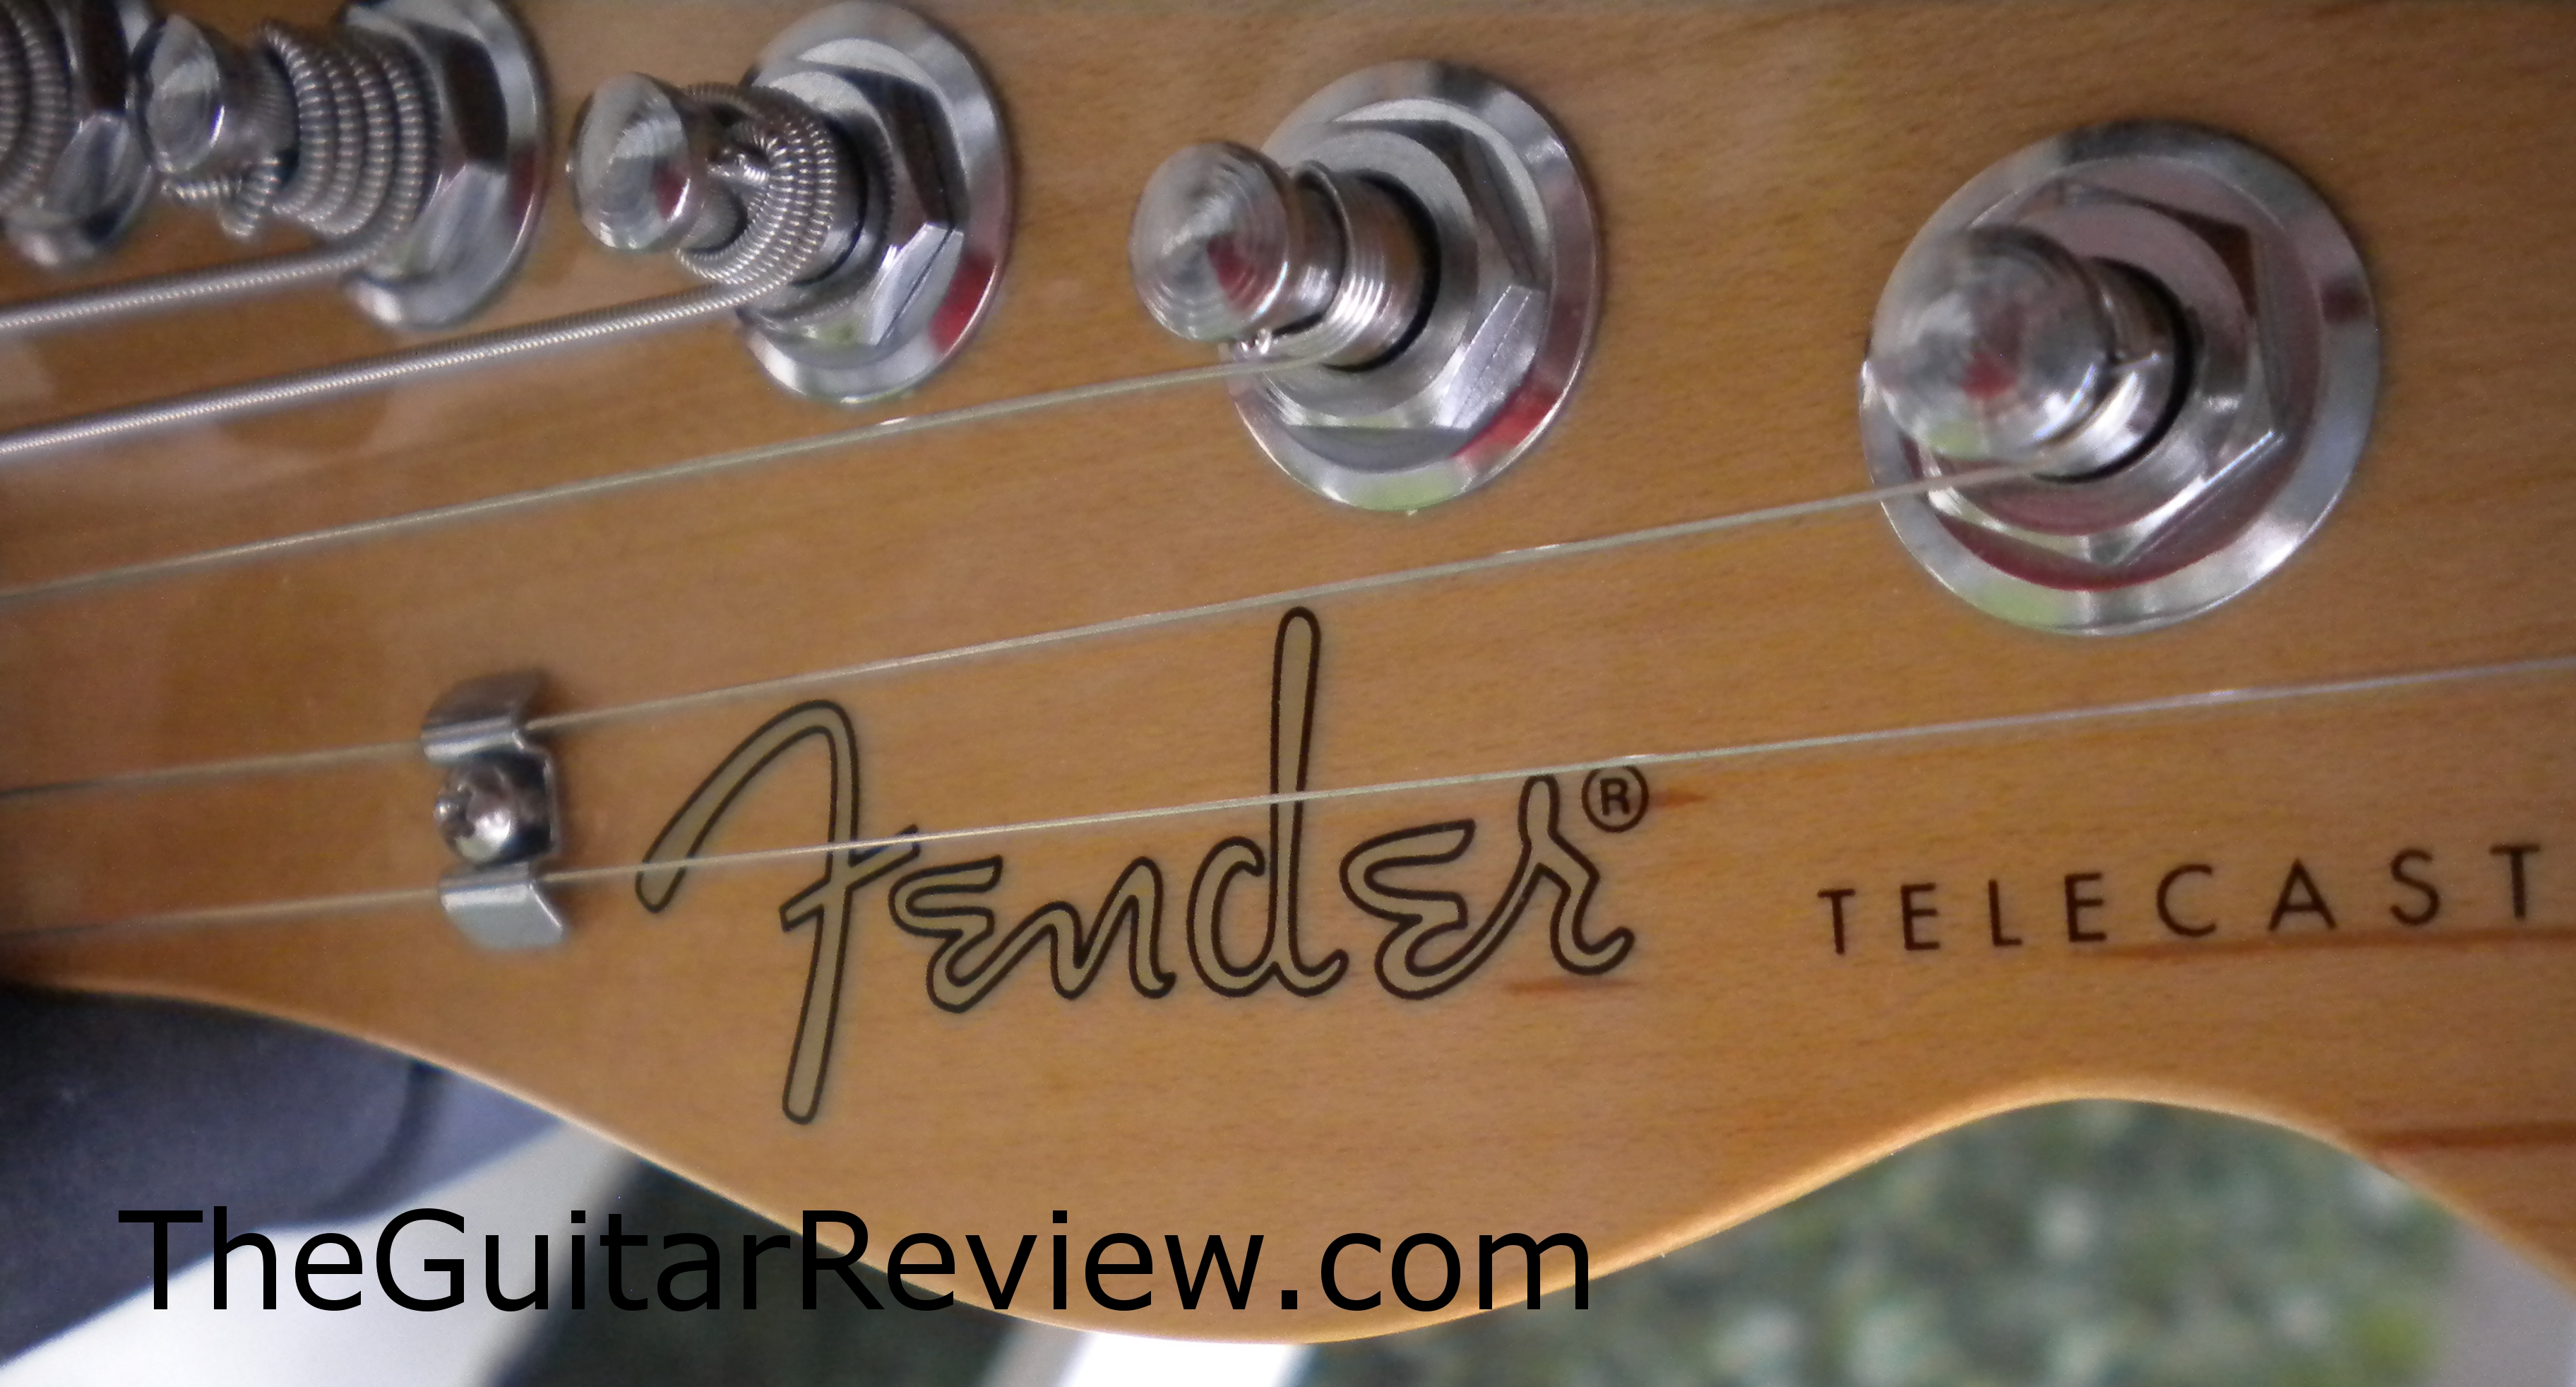 hight resolution of the mighty fender blacktop telecaster baritone review get down low without breaking the bank the guitar review dot com tm the guitar review dot com tm